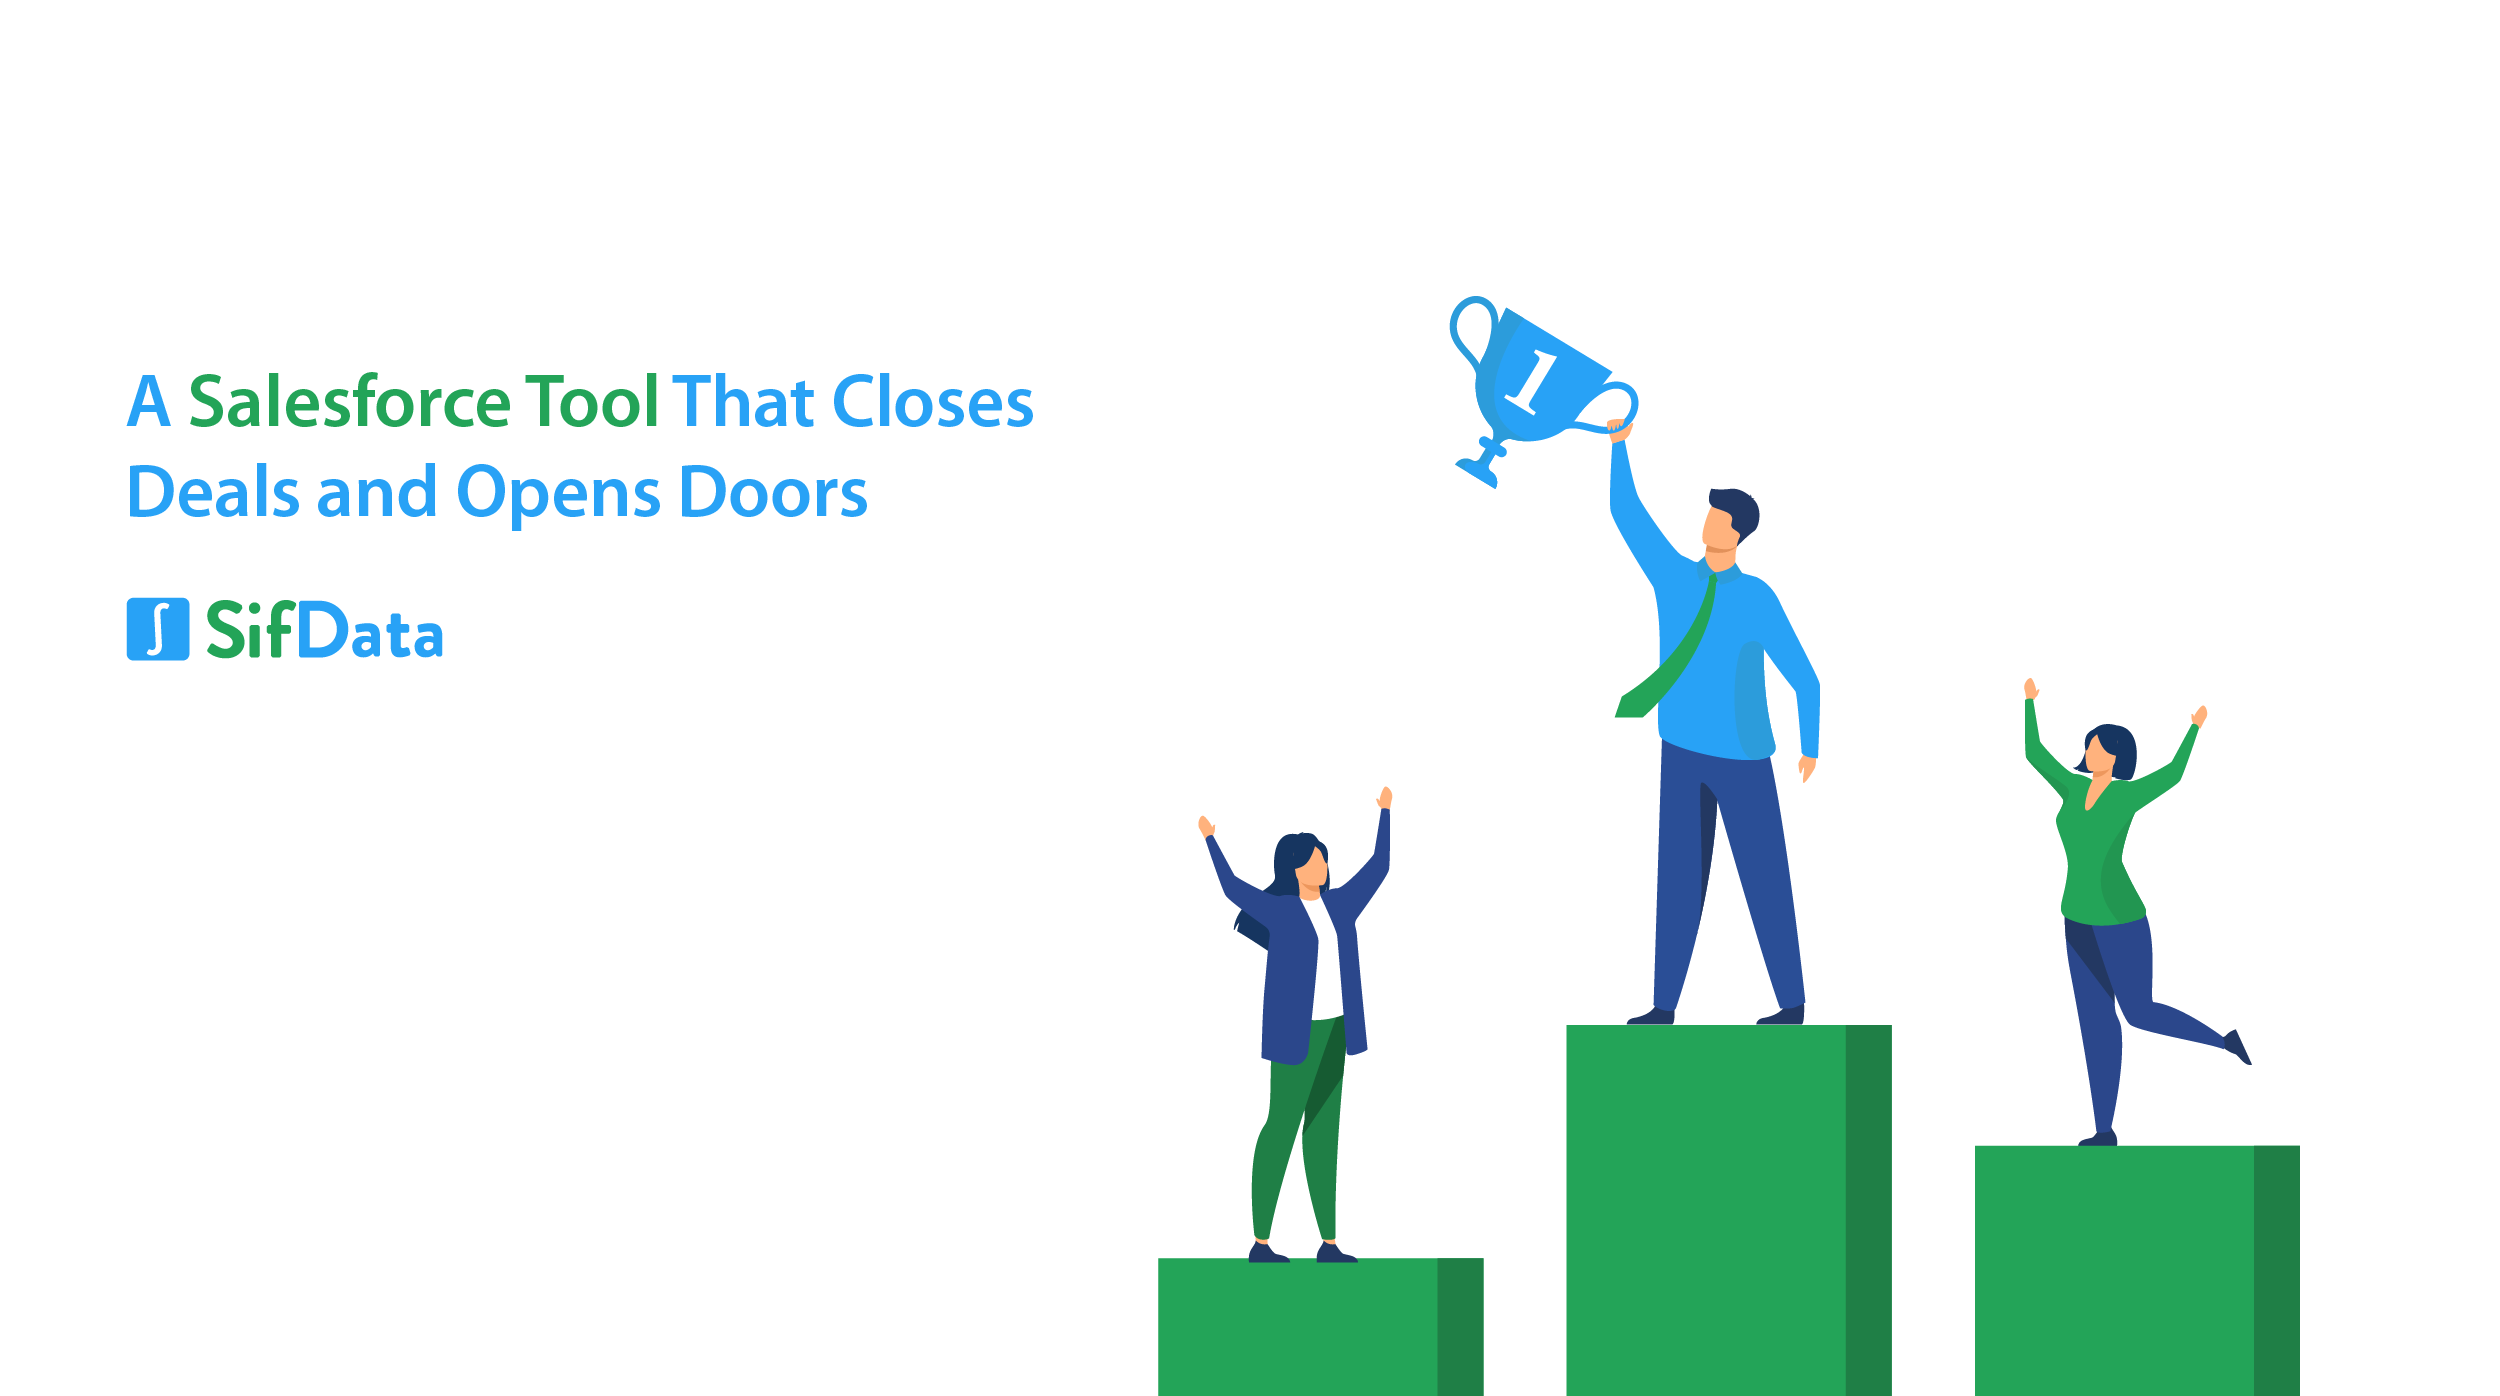 A SALESFORCE TOOL THAT CLOSES DEALS AND OPENS DOORS